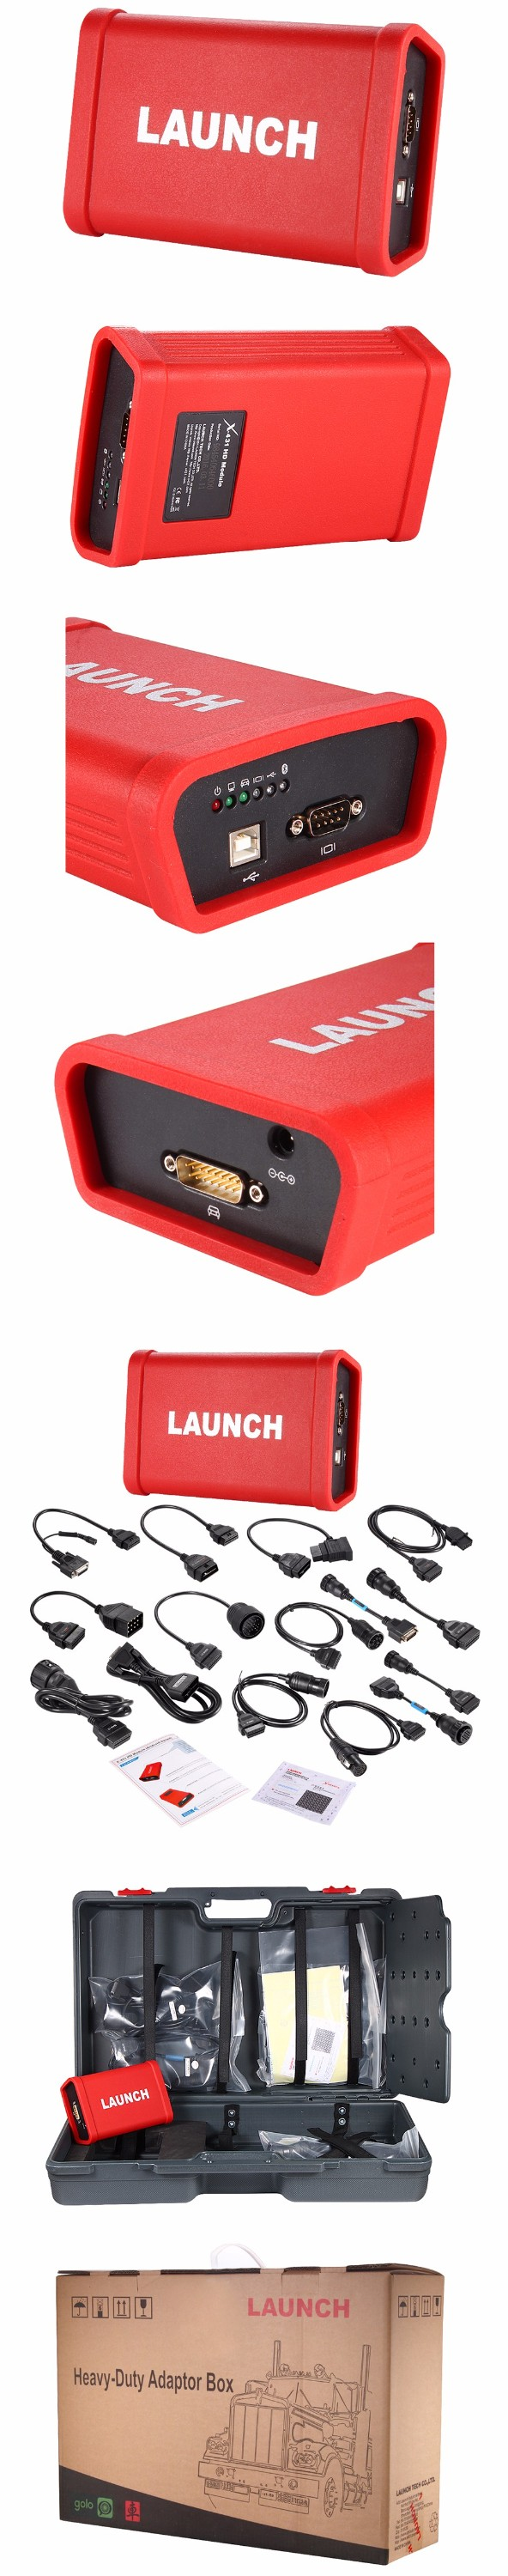 Used Blue tooth Launch car scanner for luxury car